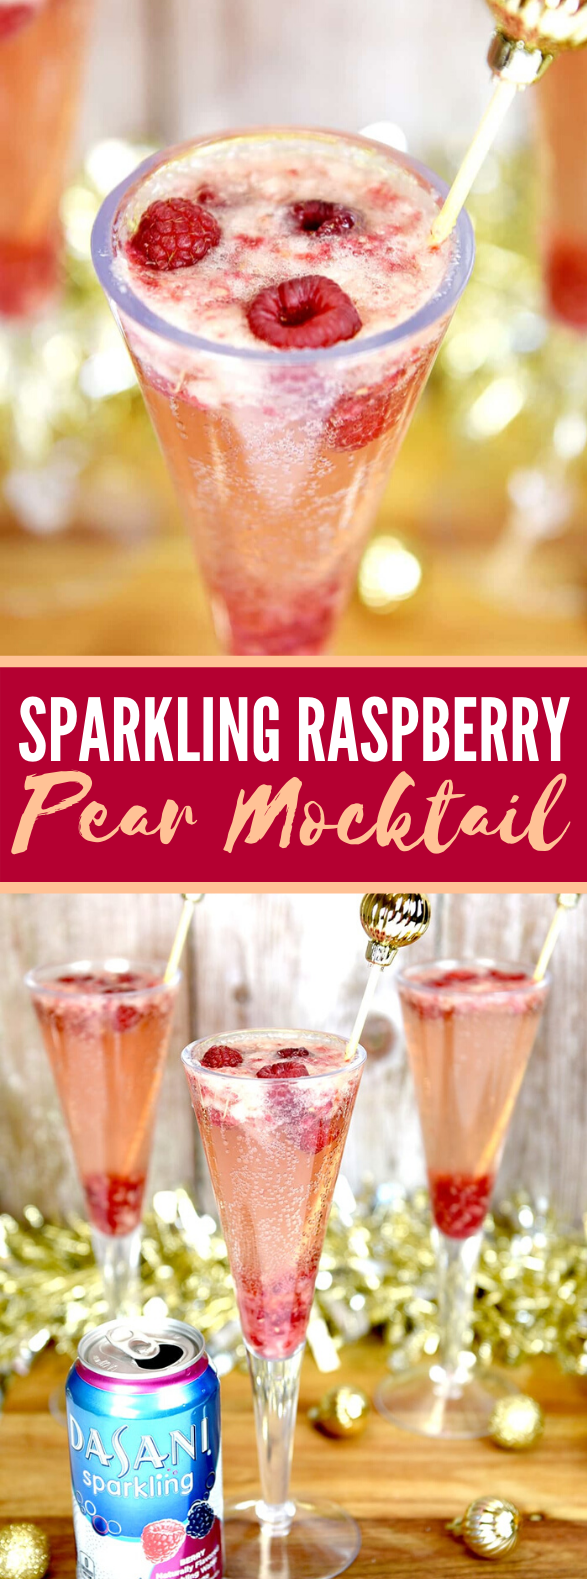 SPARKLING RASPBERRY PEAR MOCKTAIL #drinks #sparklingholiday